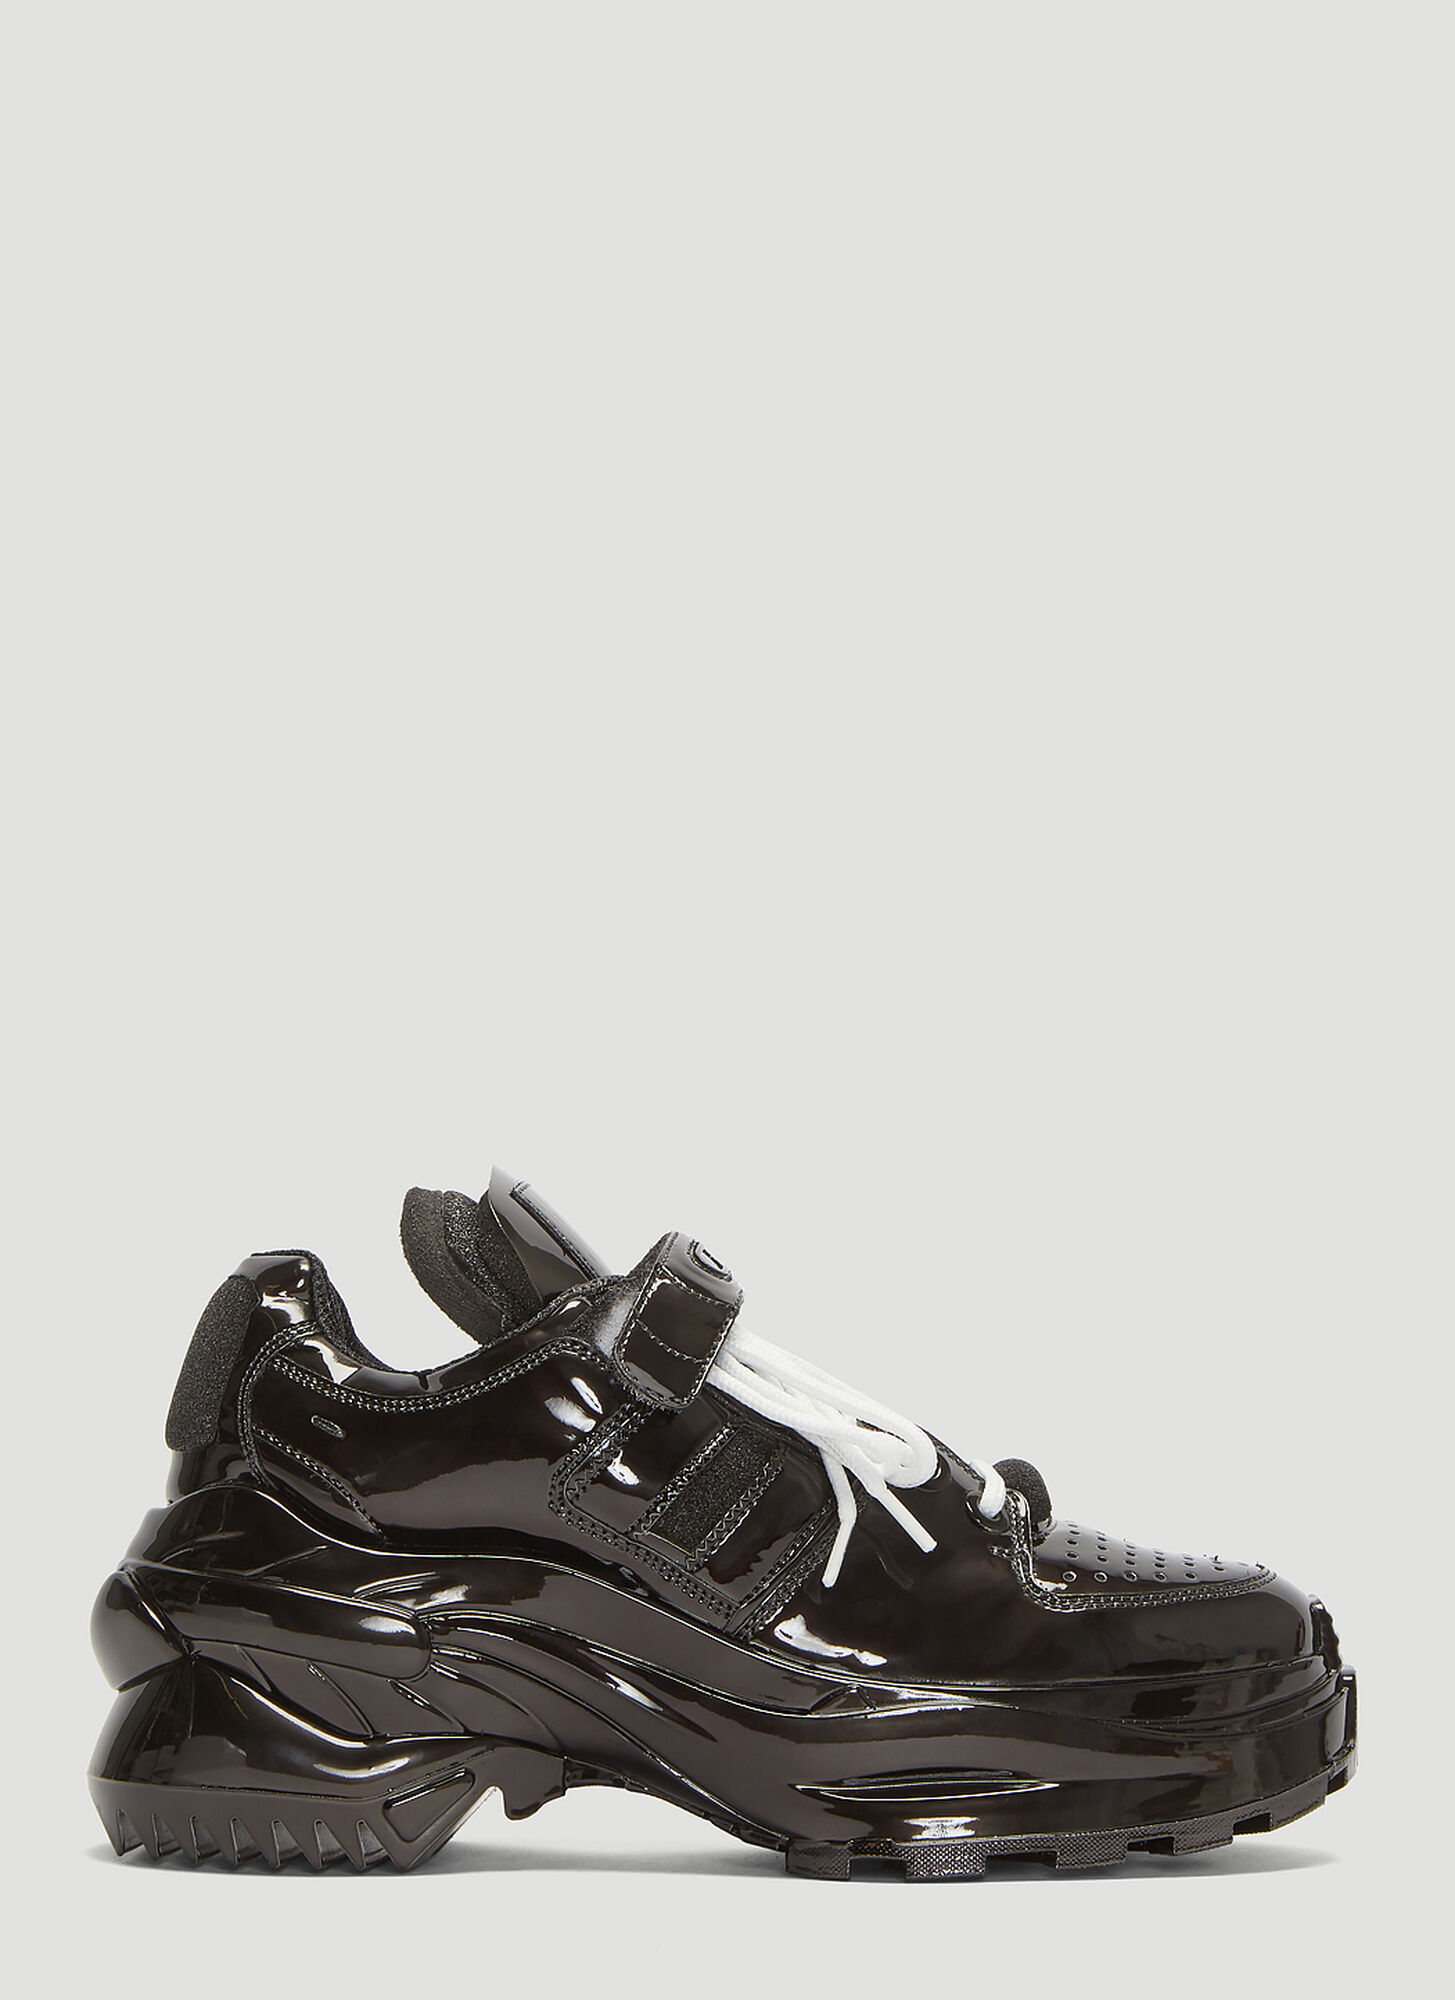 Maison Margiela Retro Fit Patent Leather Sneakers in Black